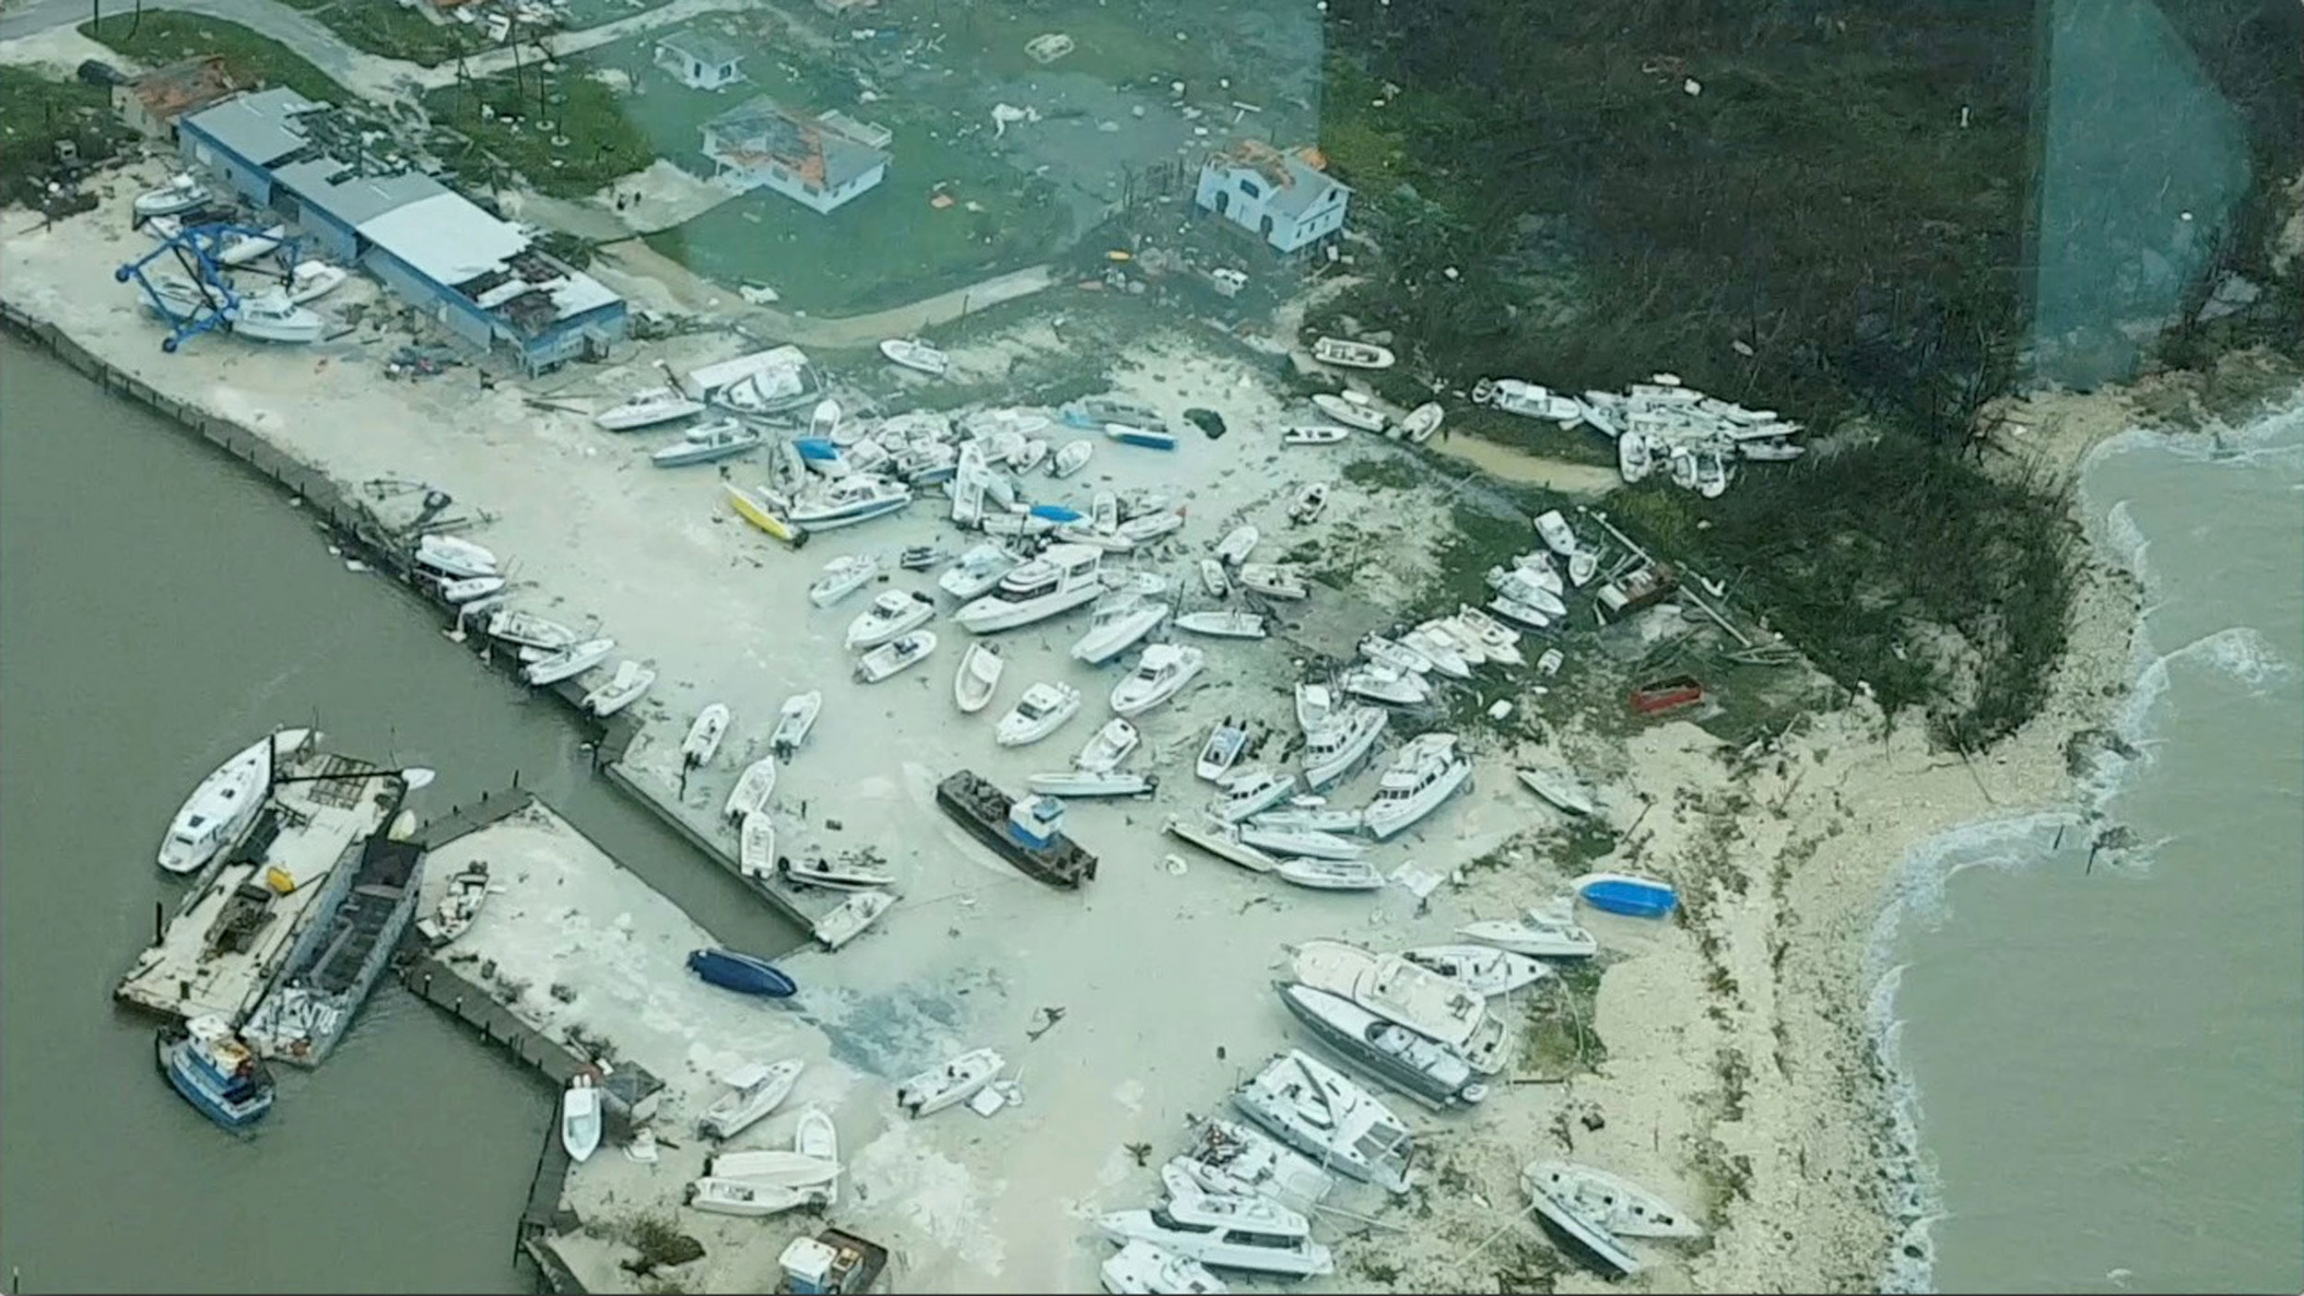 An aerial view shows boats damaged and washed ashore in the Bahamas after Huricane Dorian.